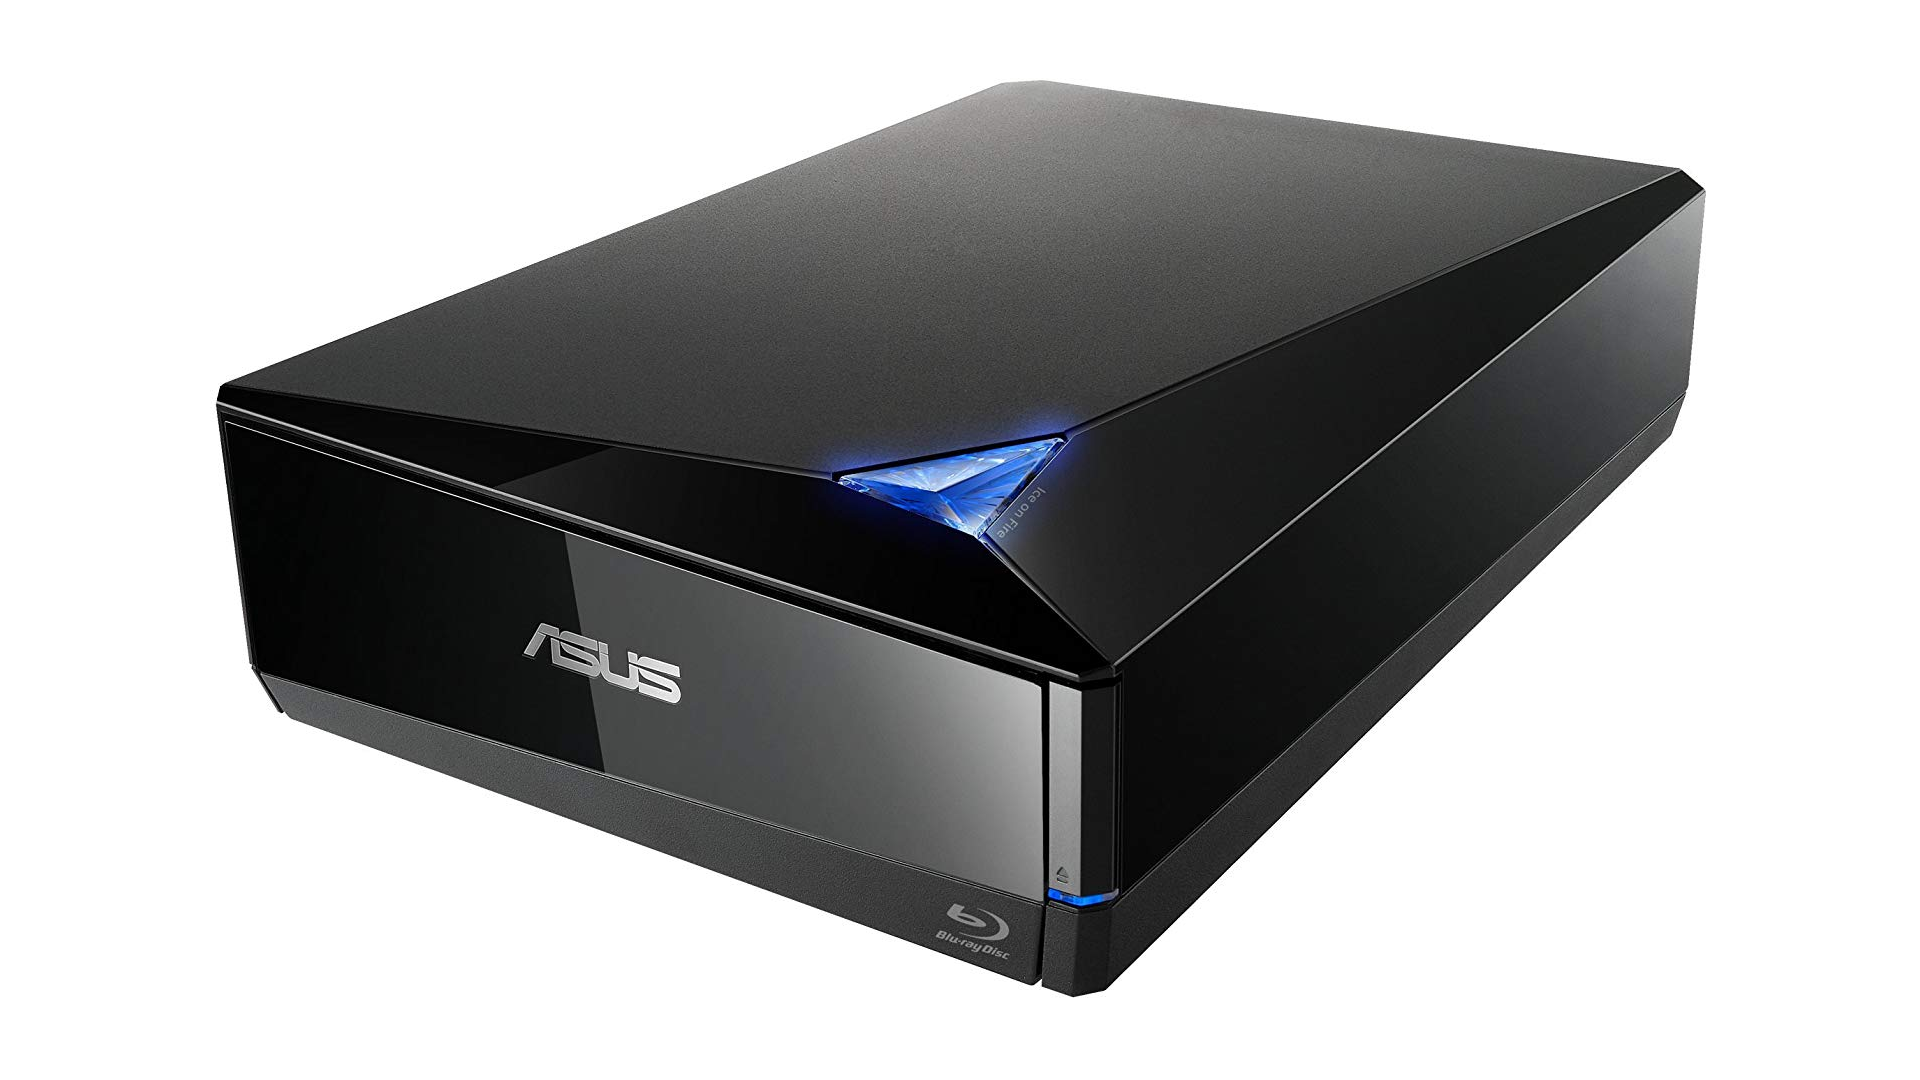 The ASUS 16X Blu-Ray drive